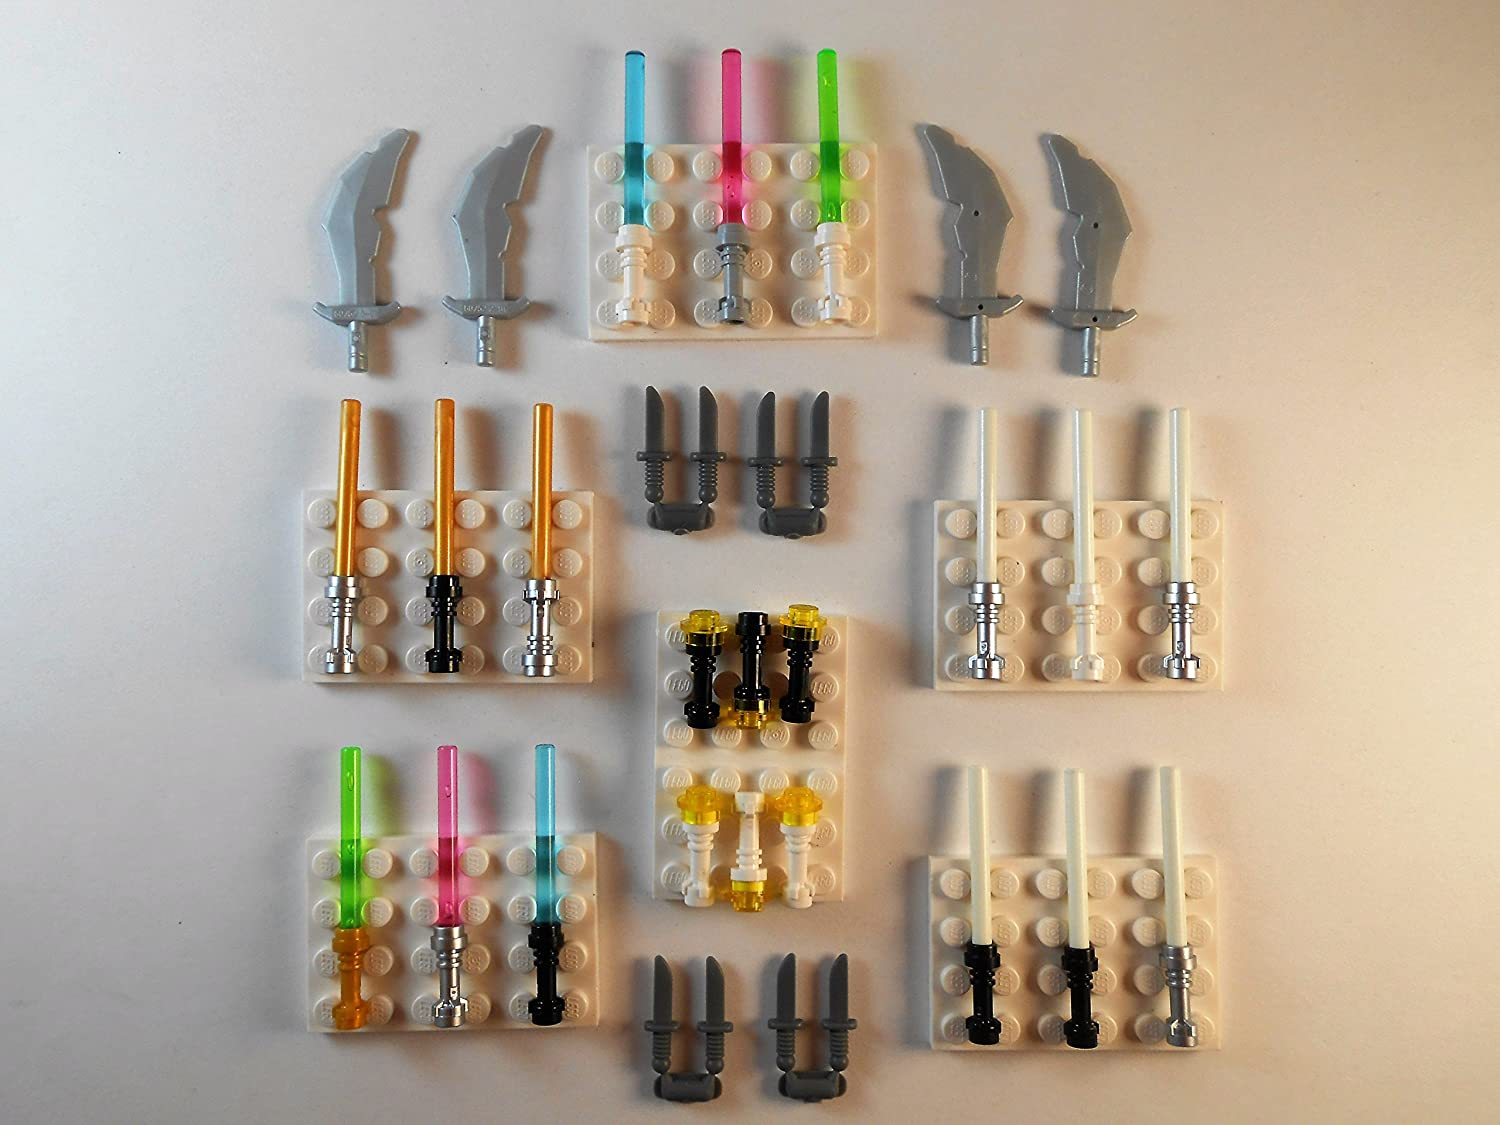 LEGO Lightsabers flashlights Swords Knifes. Glow in The Dark. Lot of 29 Star Wars Minifigure Weapons Toys